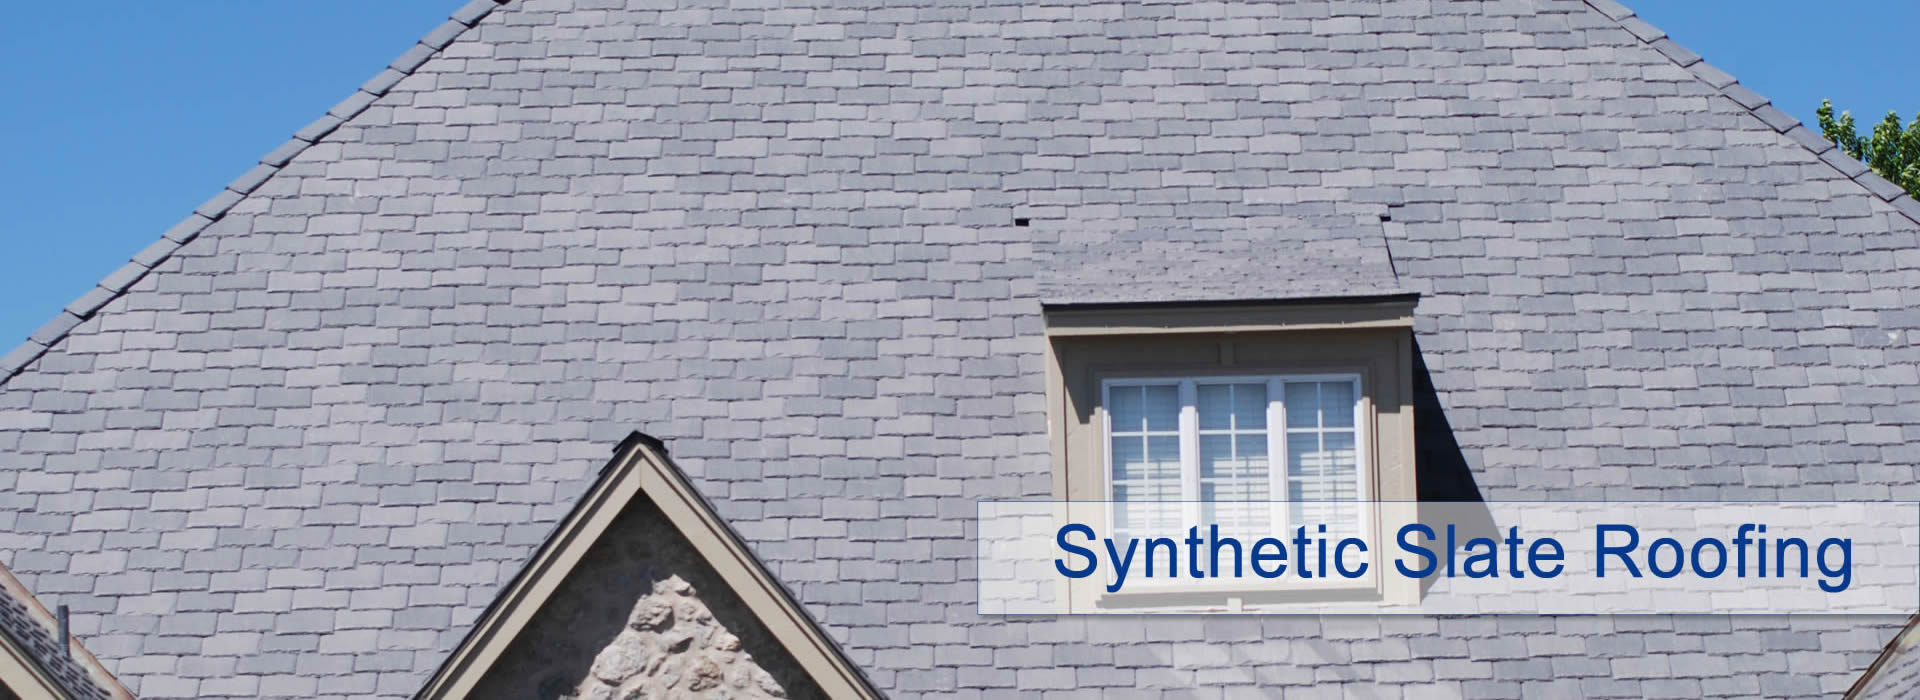 Ynthetic Slate Roofing Dallas Composite Slate Roof Fort